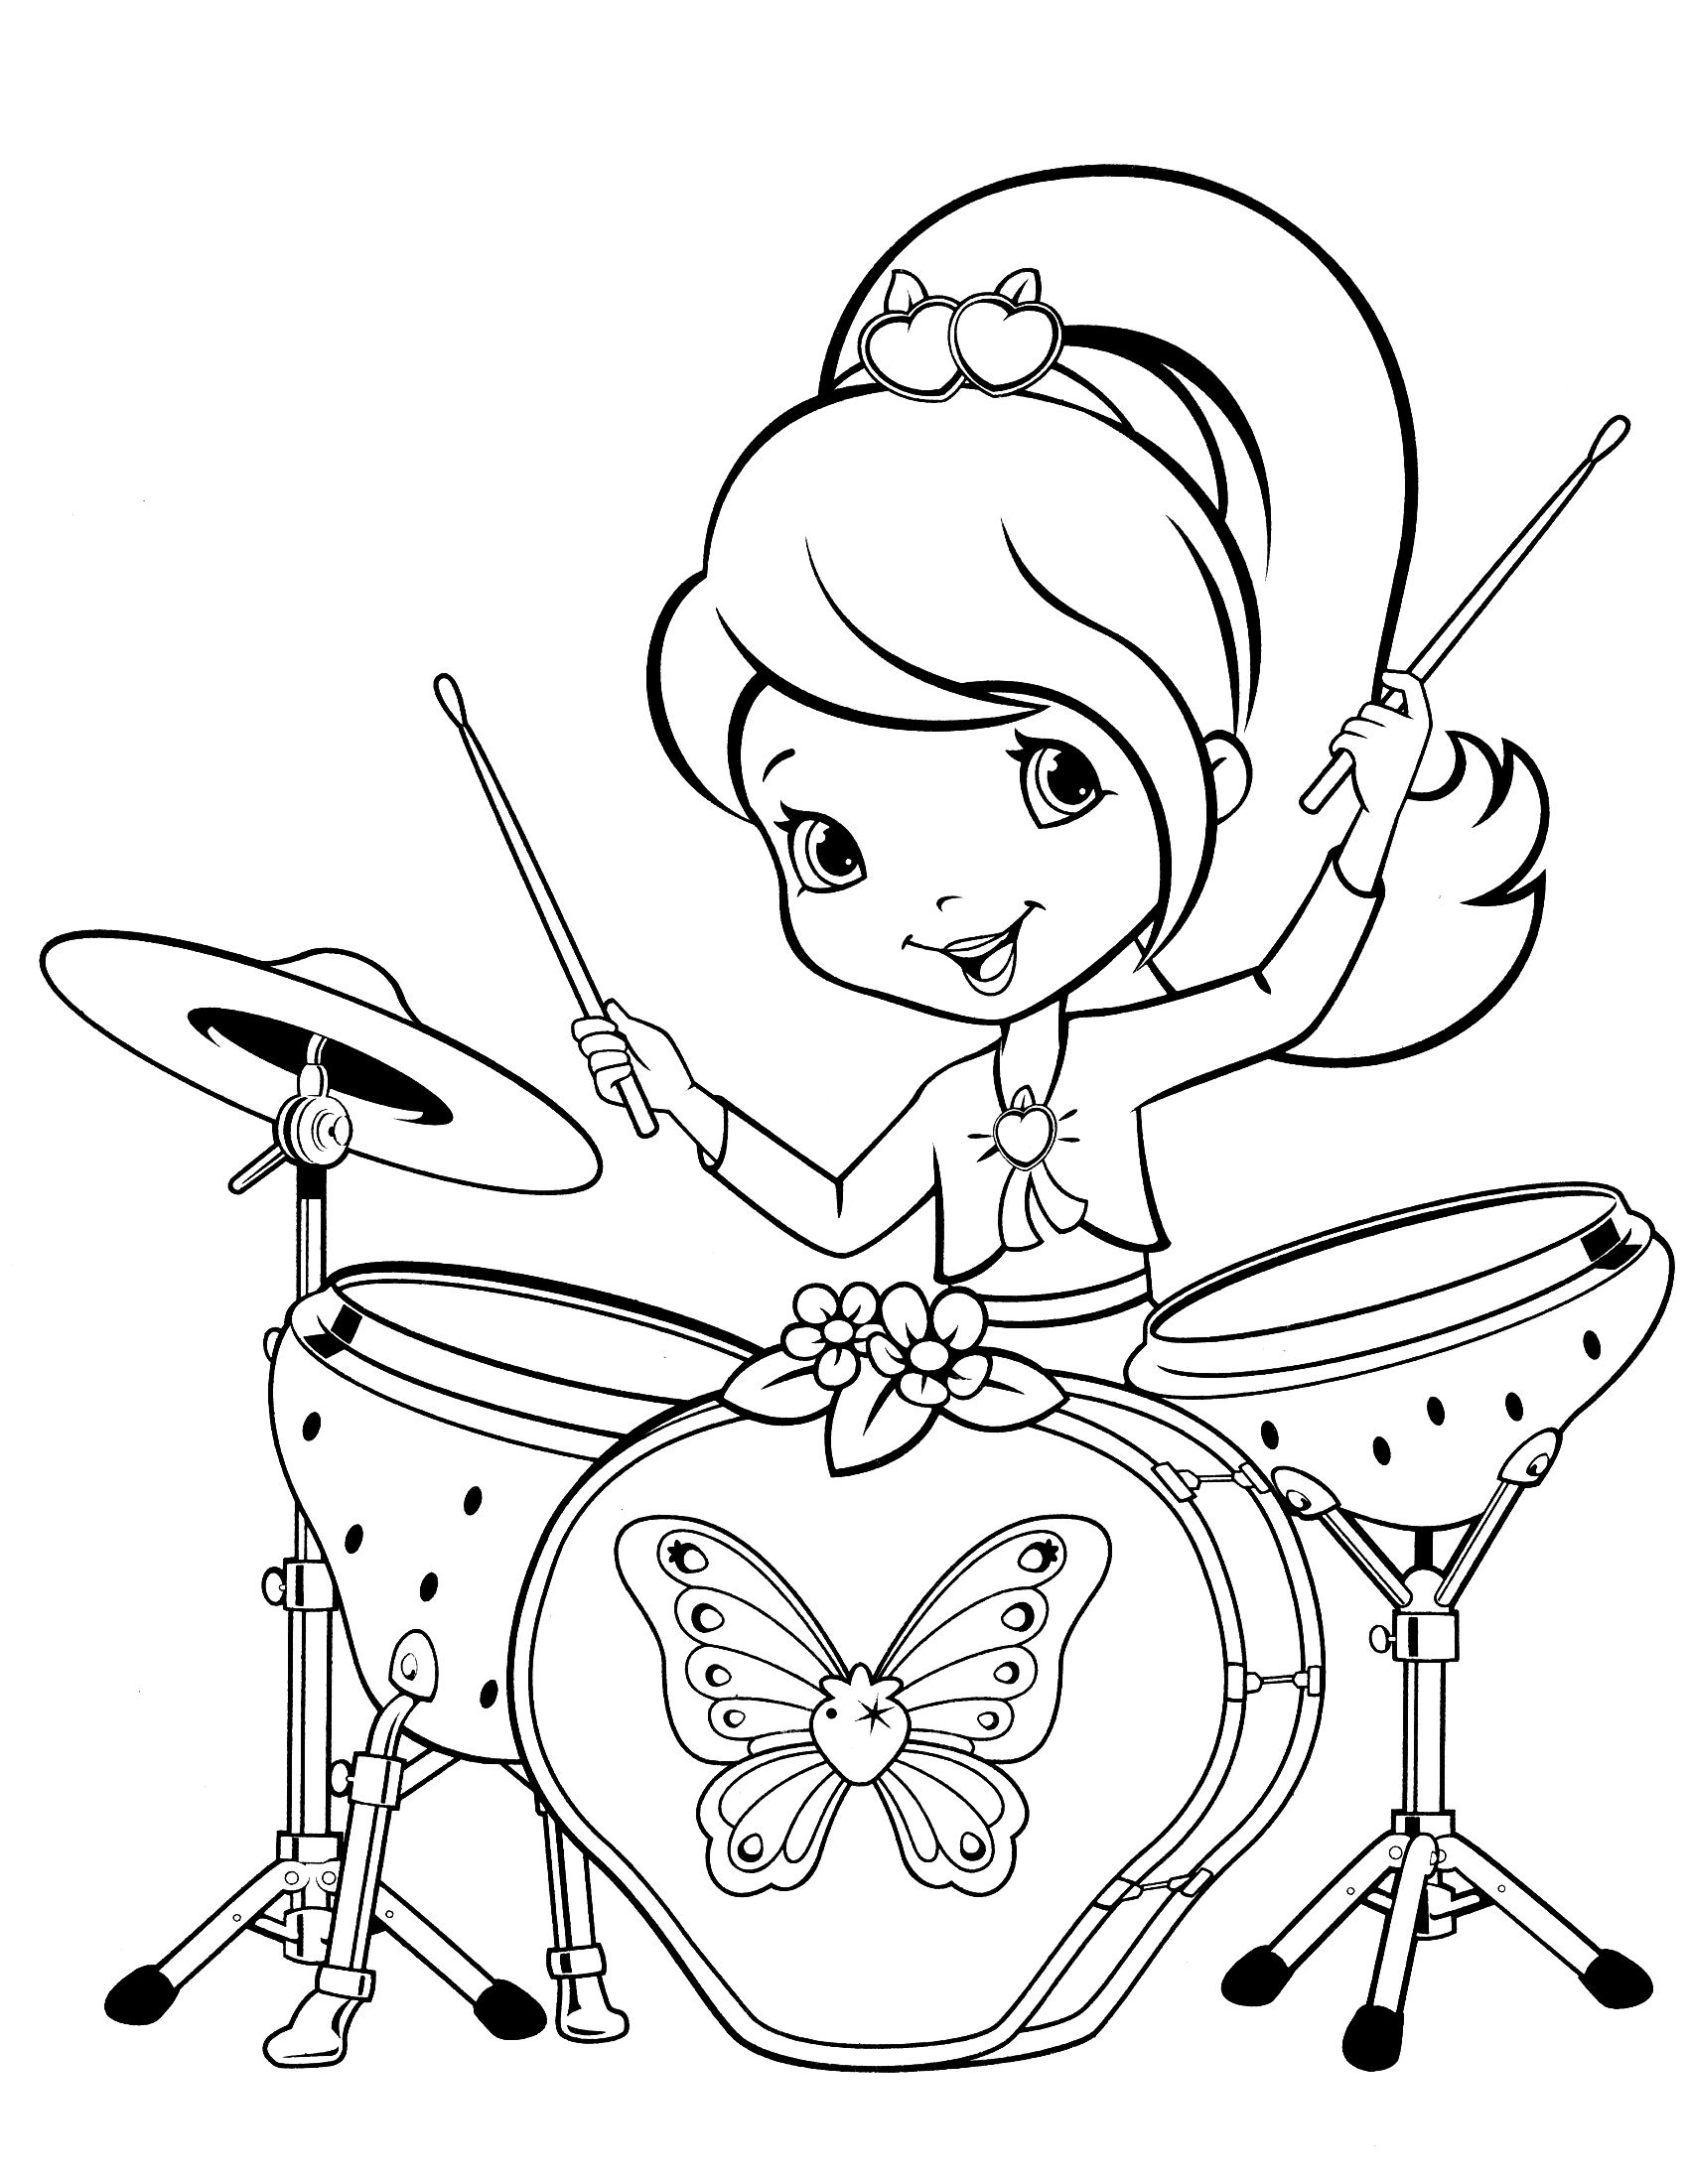 Strawberry Shortcake Coloring Pages Free Download - Texas Life ...